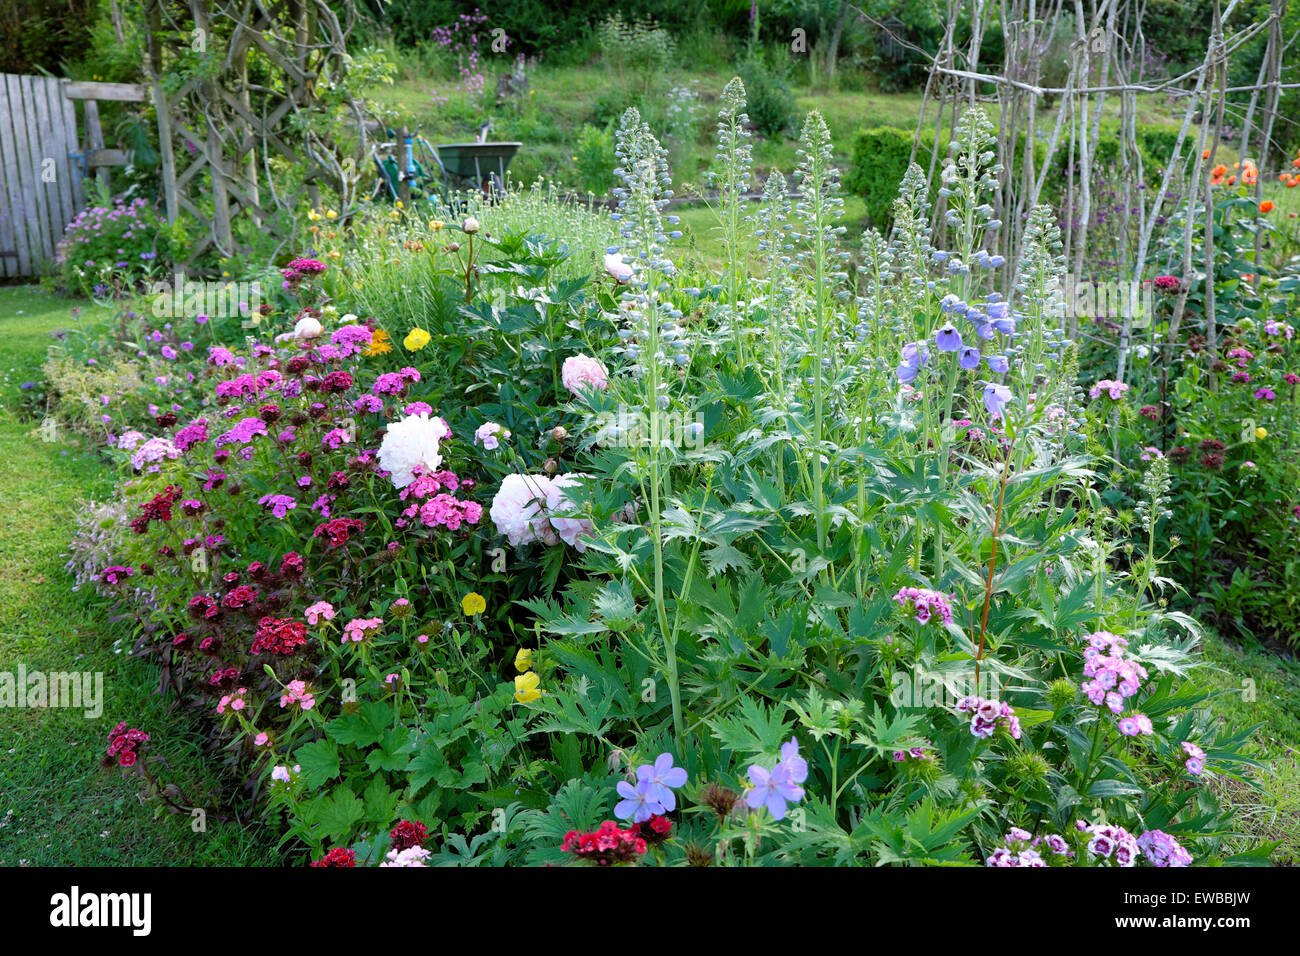 Herbaceous border with delphiniums, peonies and sweet williams in a rural flower garden in Carmarthenshire Wales - Stock Image